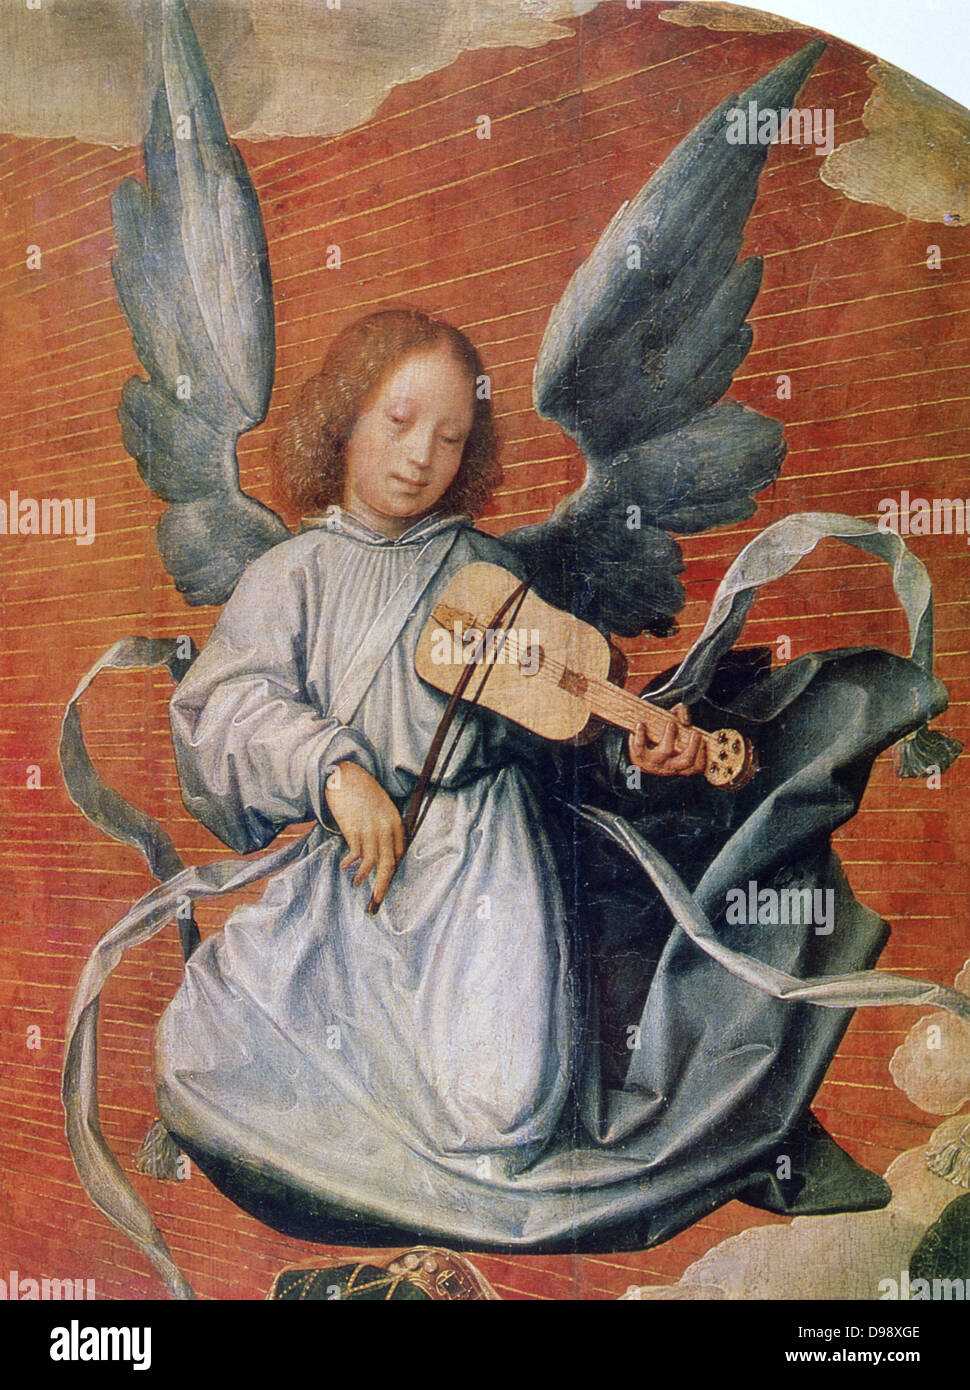 Angel playing a stringed instrument with a bow (viola da braccio?). 'The Virgin in Glory' (detail), 1524. - Stock Image